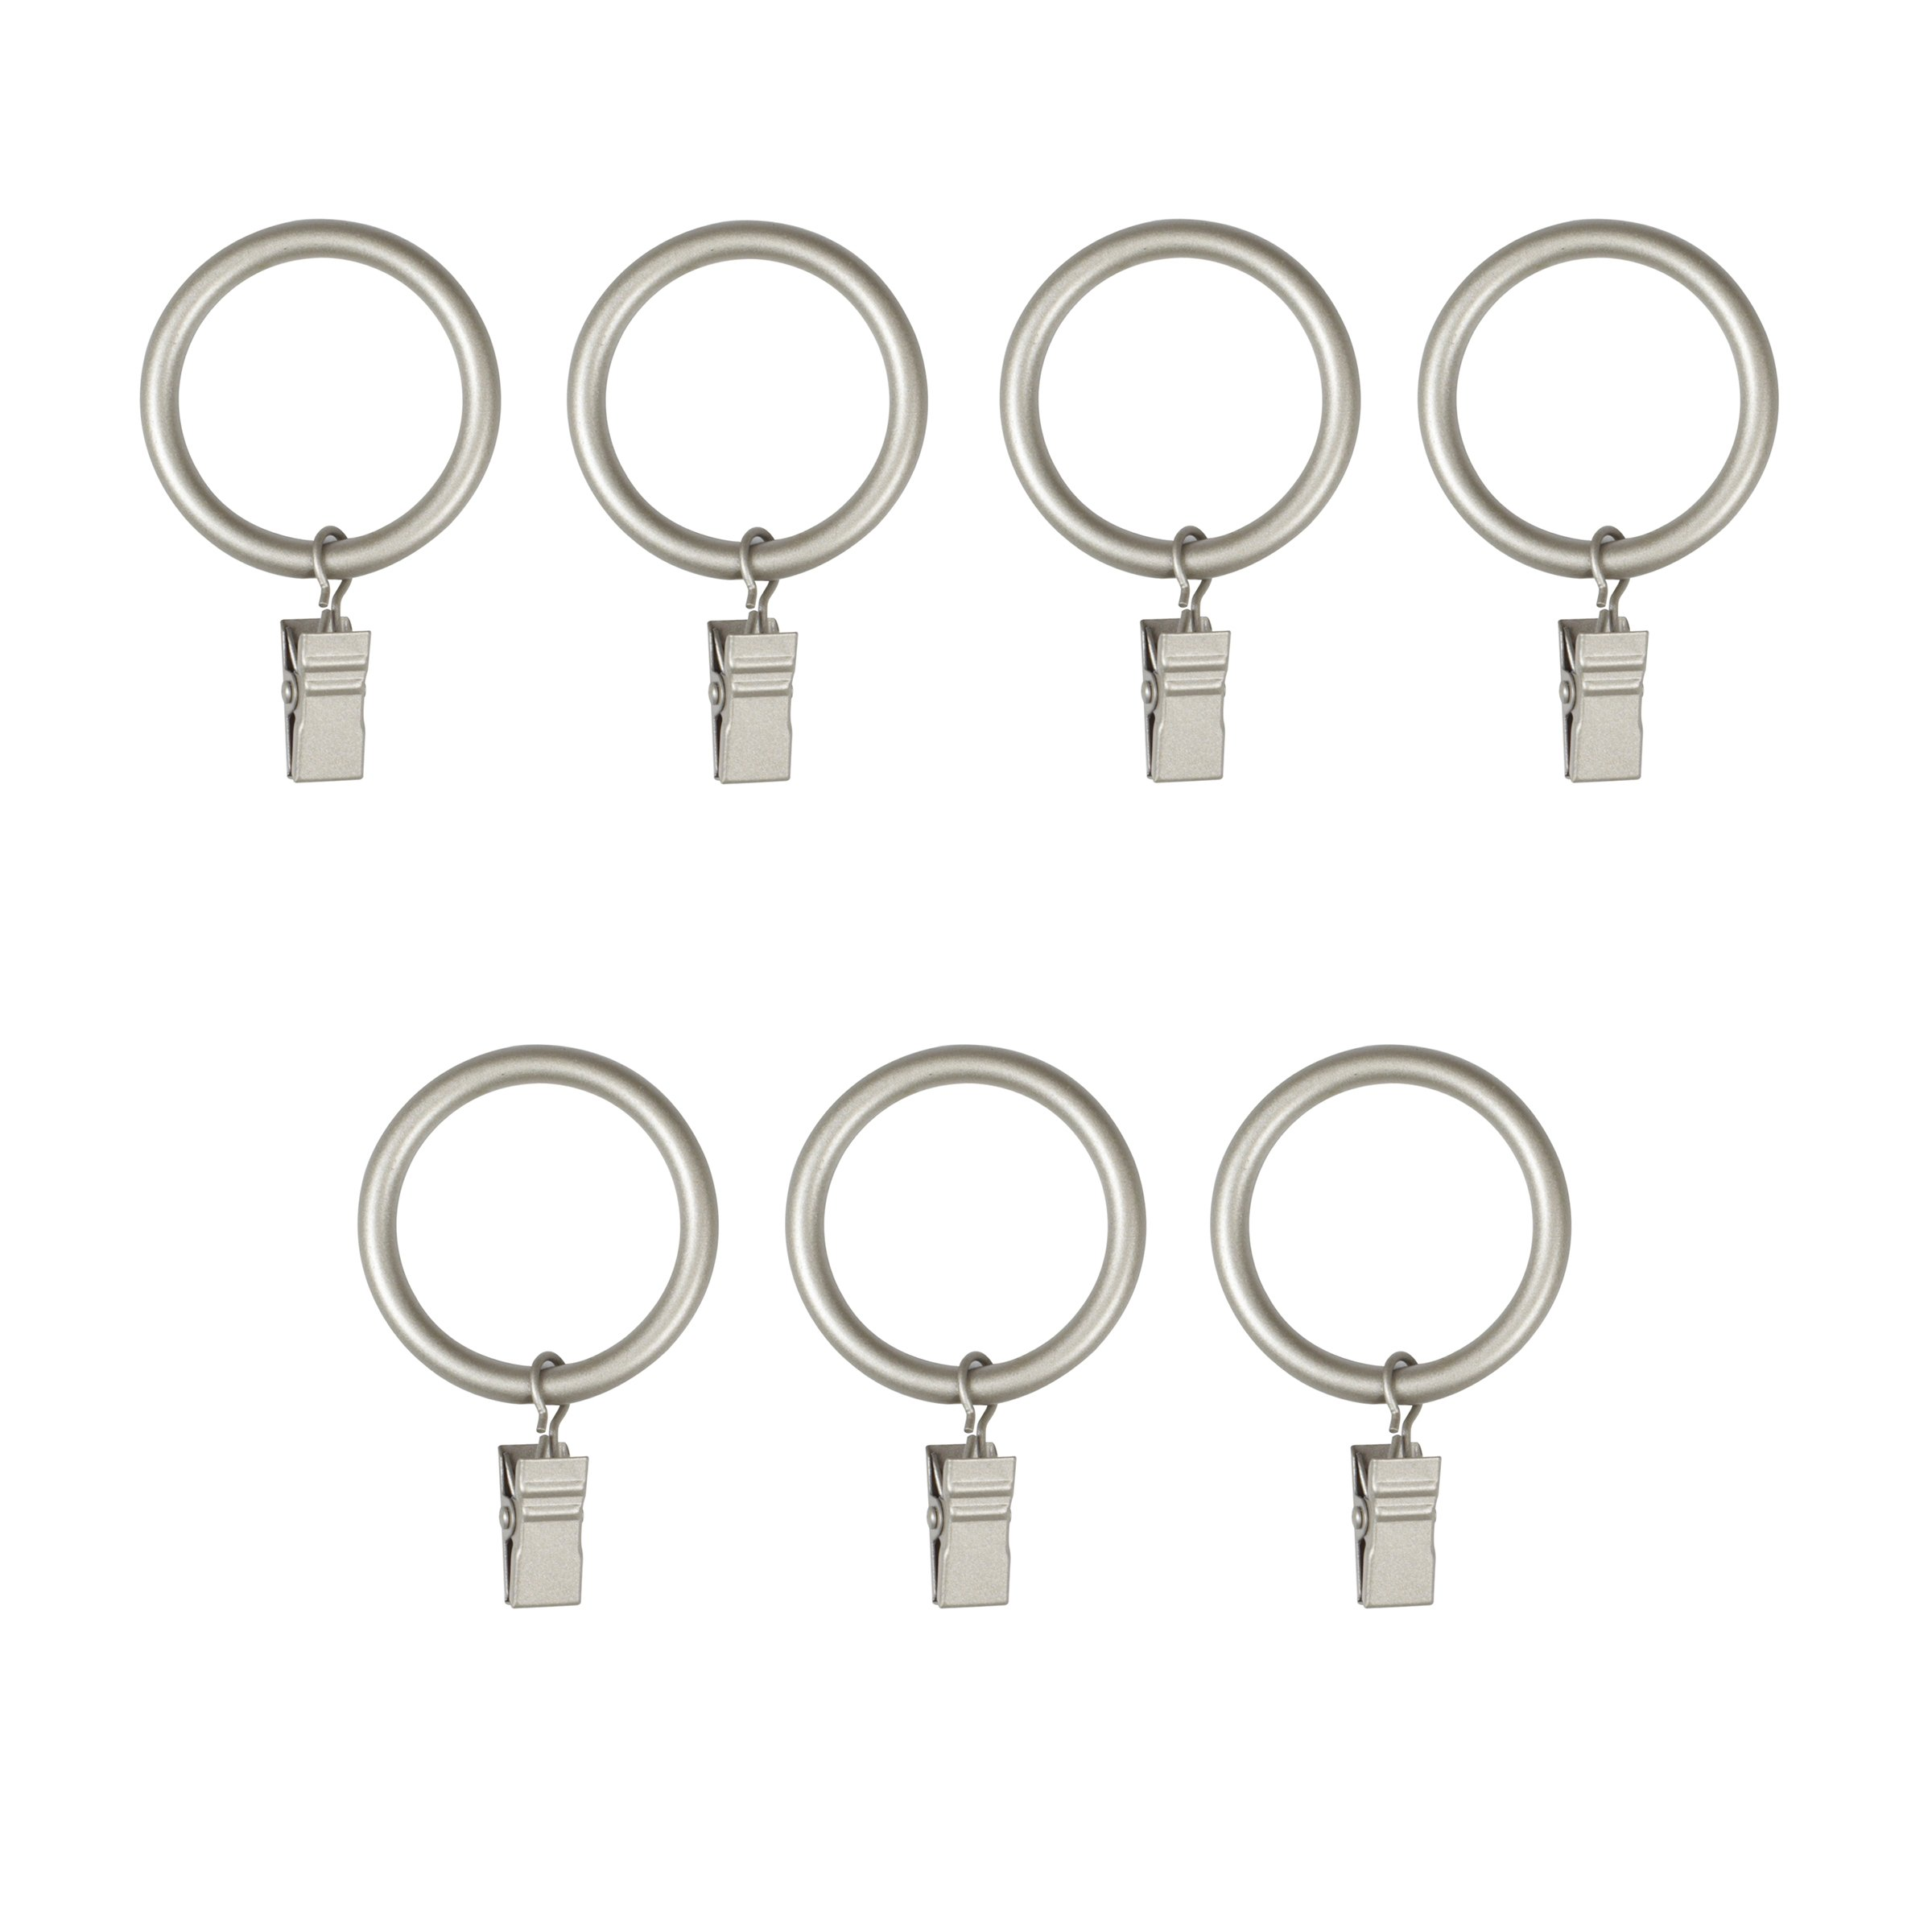 Umbra Clip Curtain Rings – Extra Large Curtain Rings with Metal Clips for 1.25 Inch Curtain Rods, Set of 7, Nickel